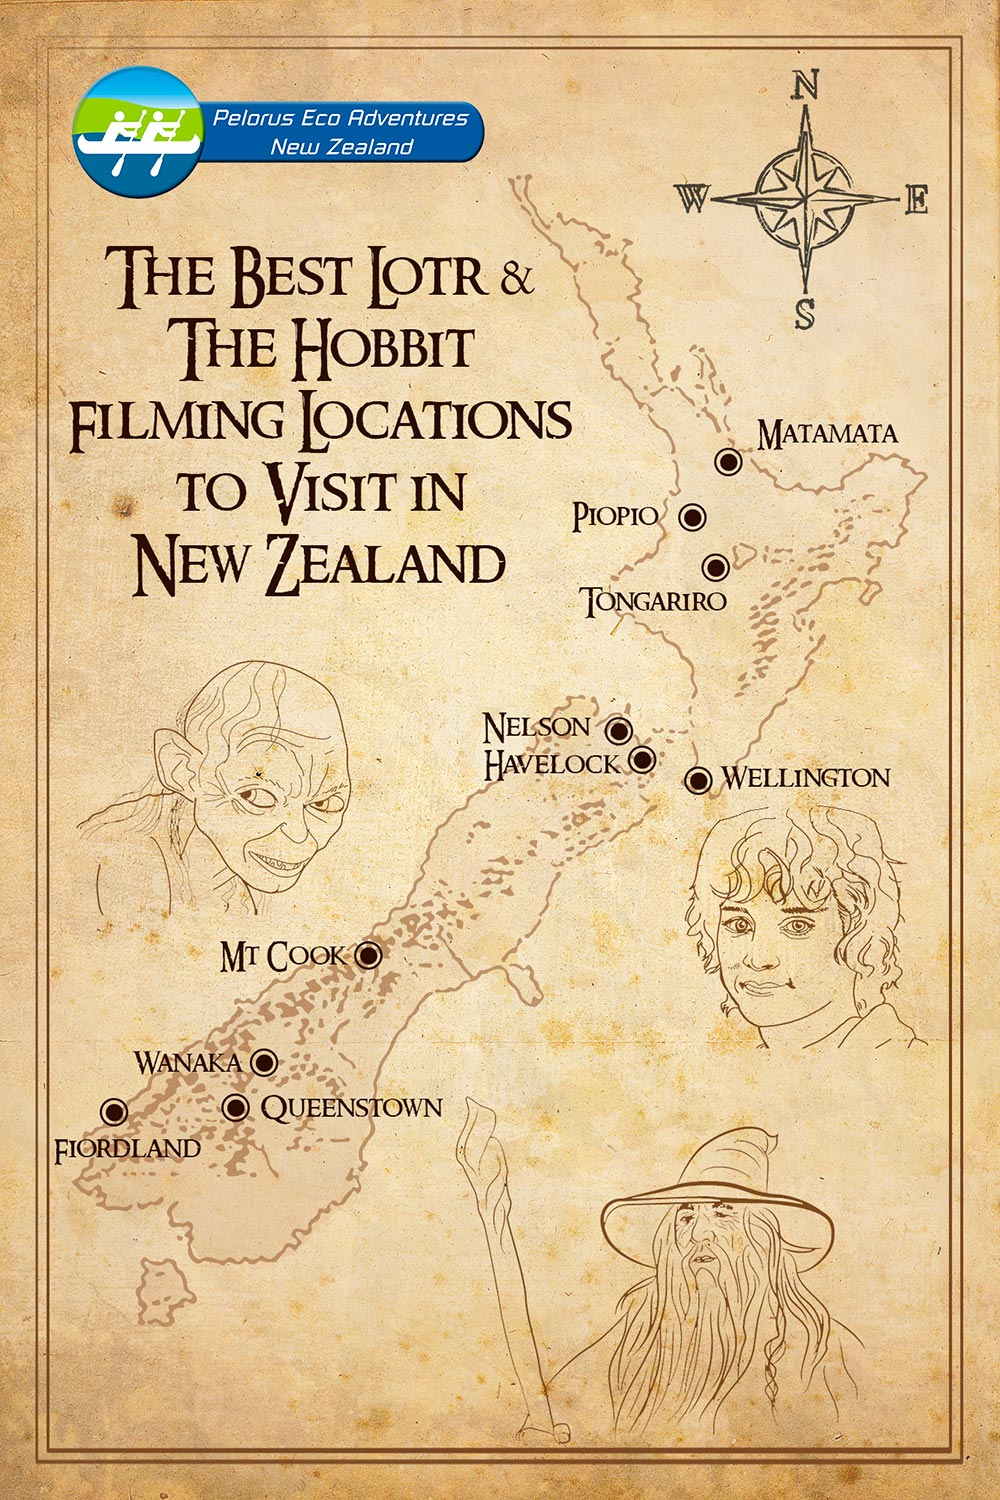 Lord of the Rings Filming Locations Map New Zealand